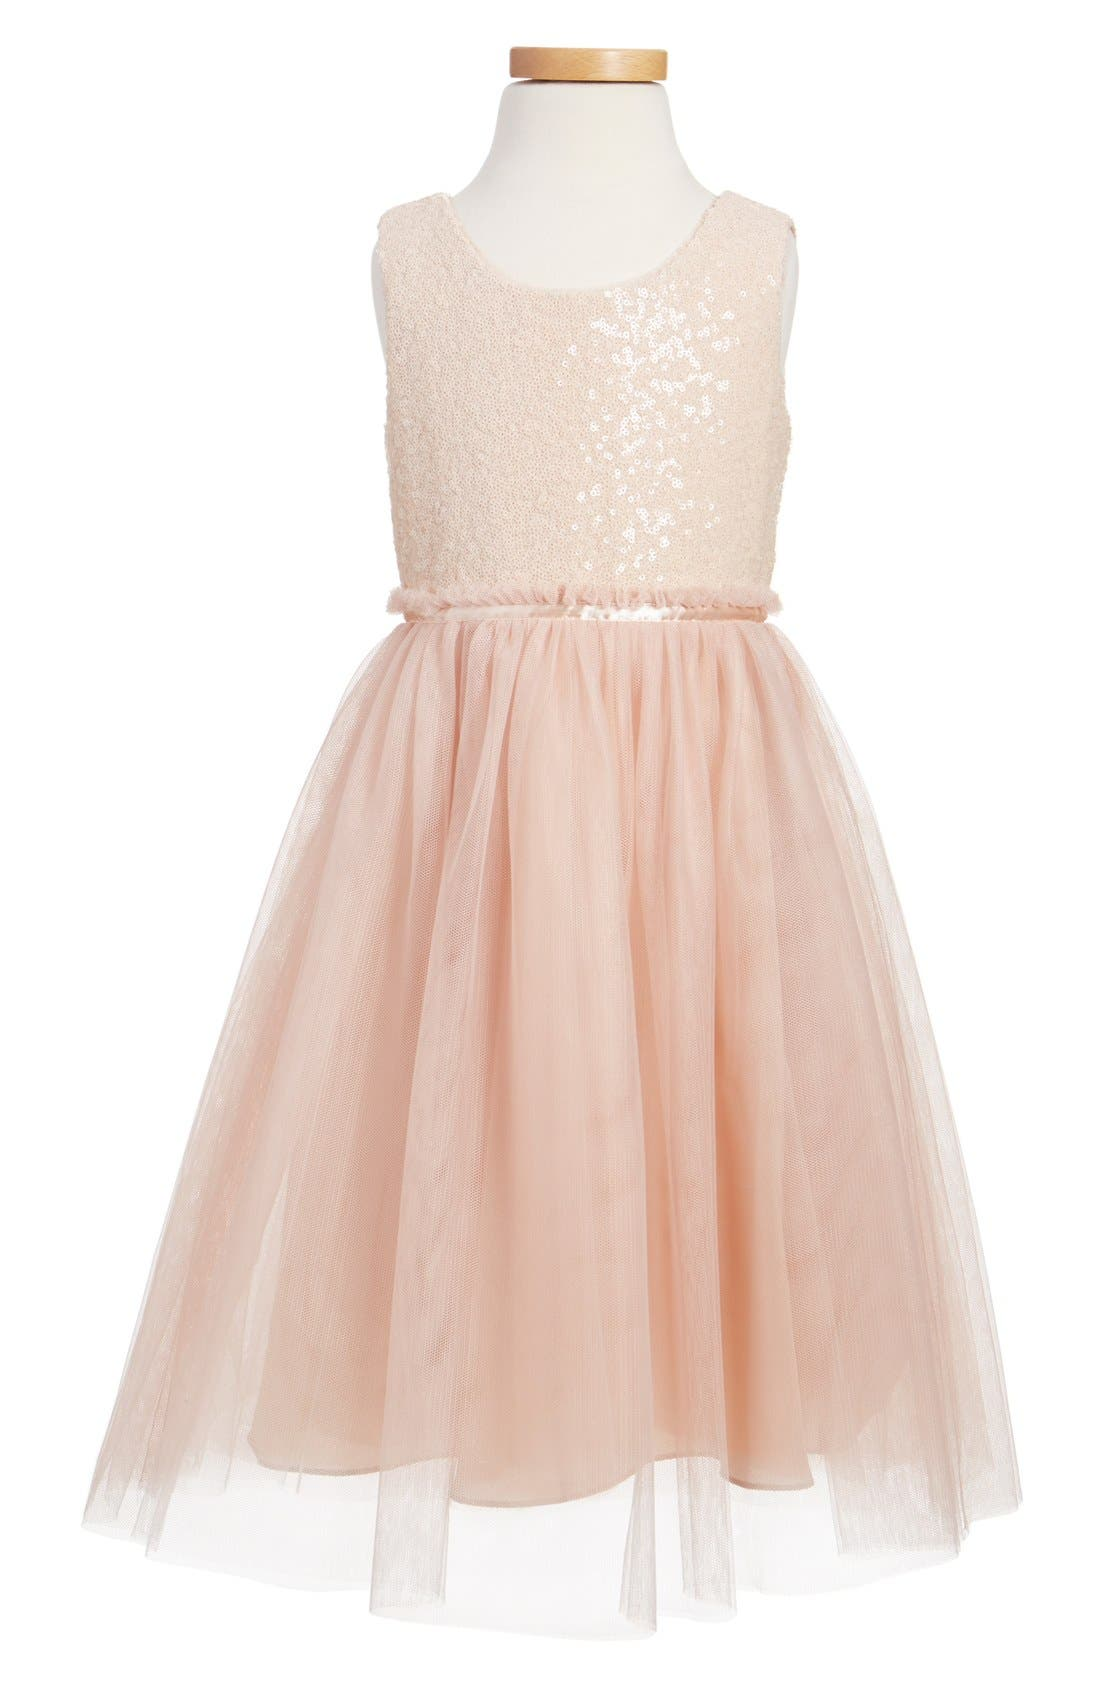 JENNY YOO, Collection Rosalie Sequin & Tulle Dress, Main thumbnail 1, color, BLUSH